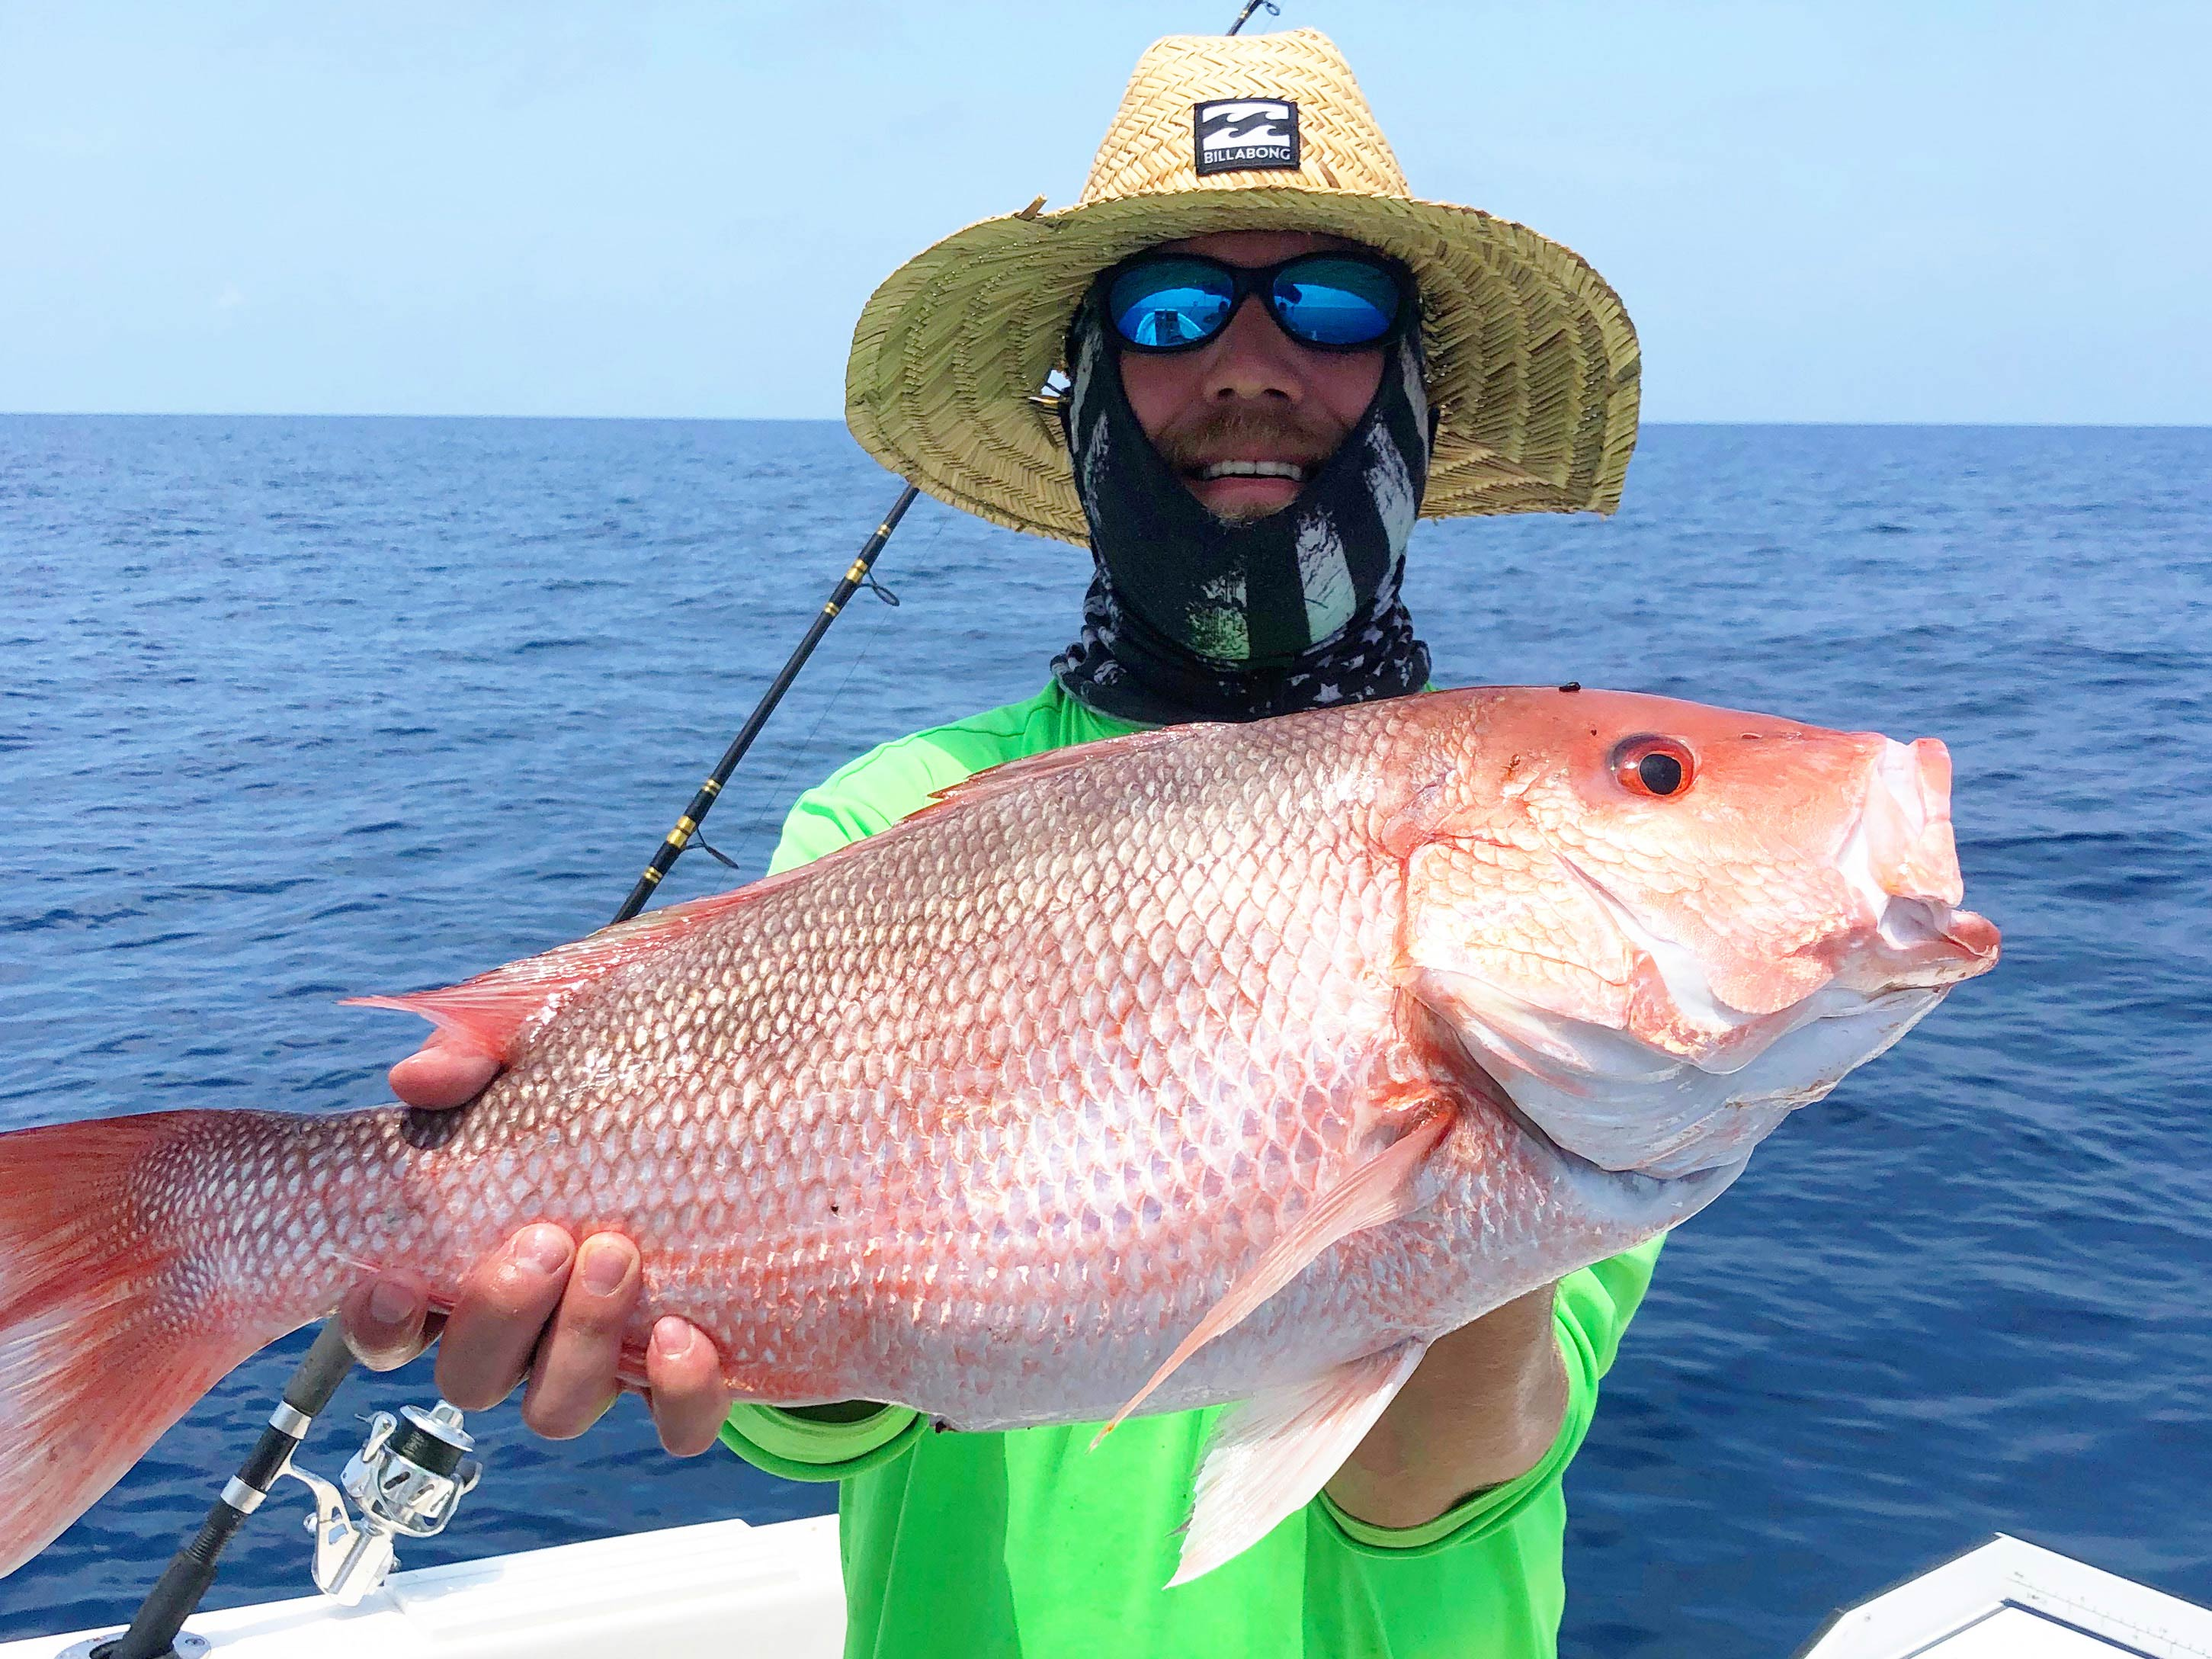 A satisfied fisherman holding a trophy Red Snapper